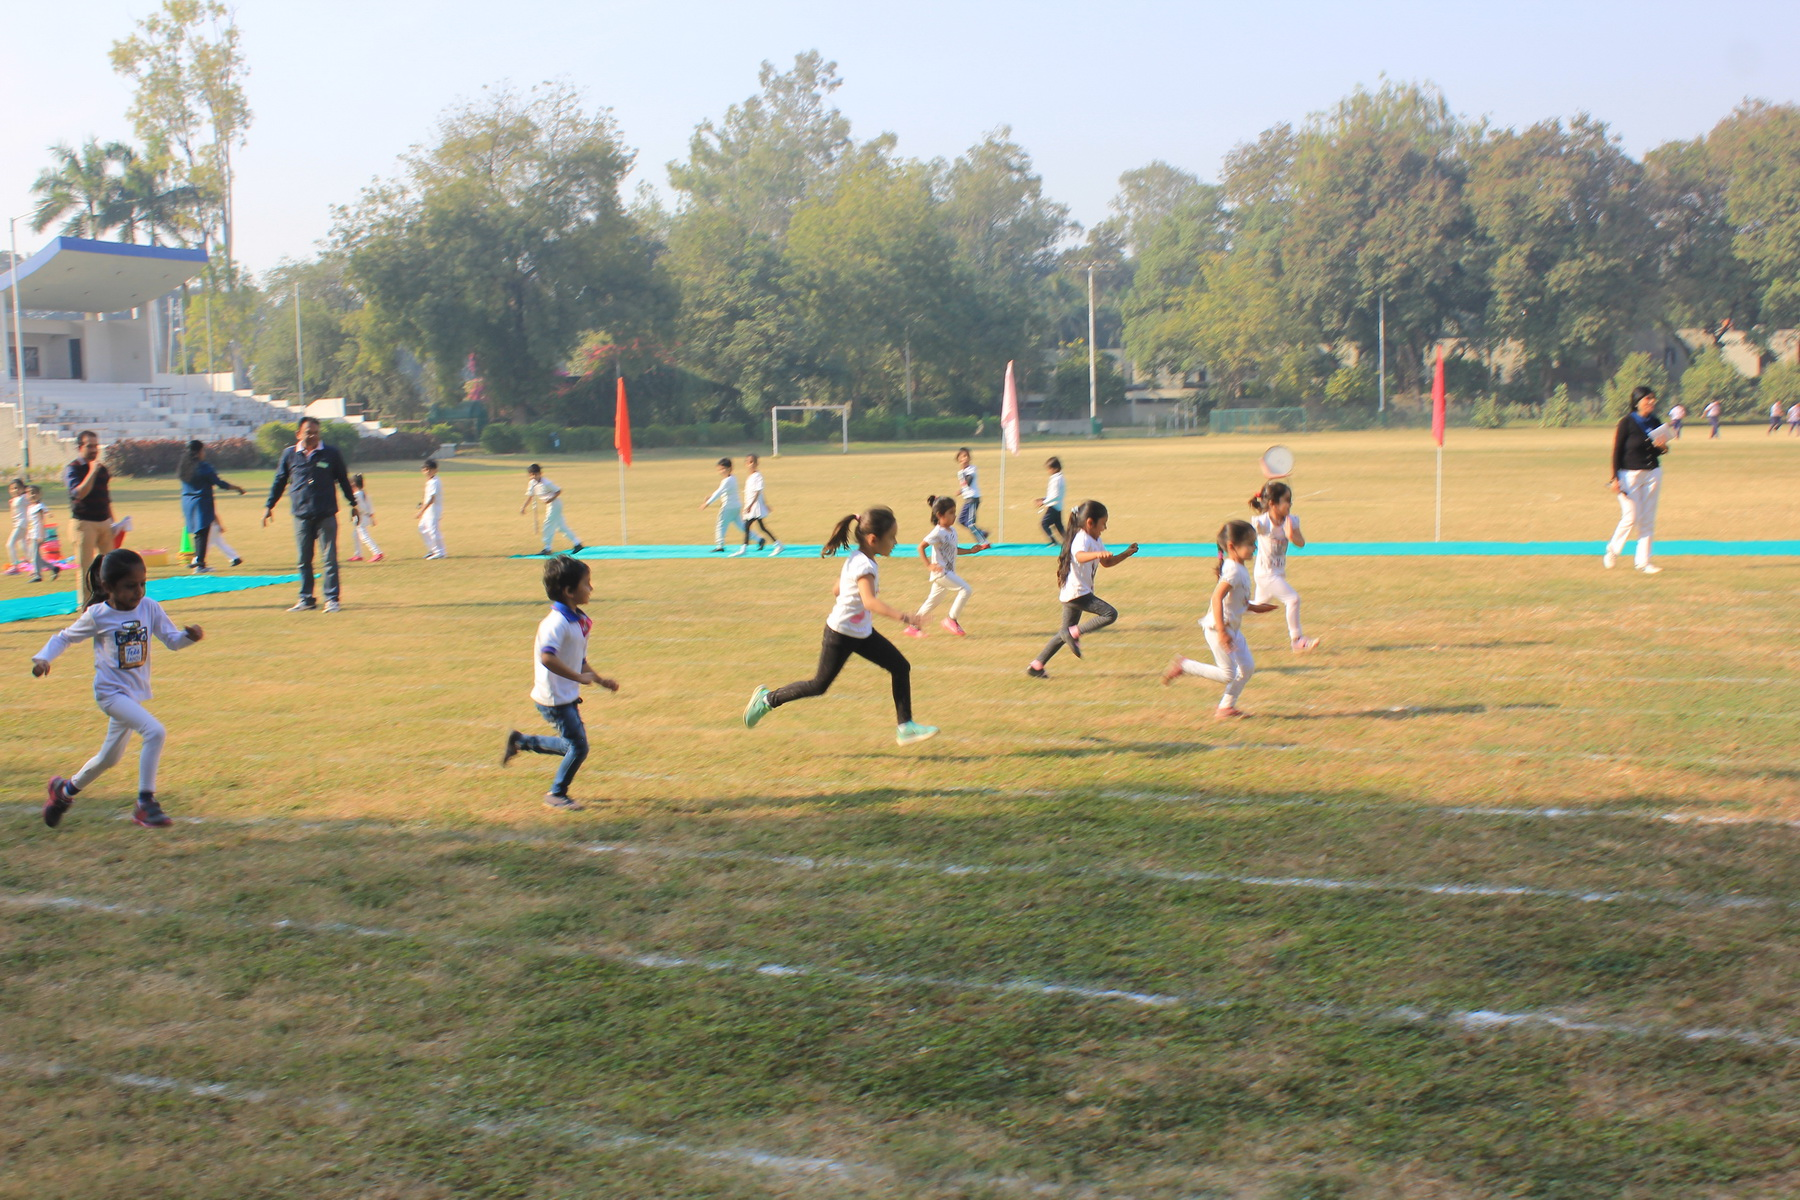 Dr. Verghese Kurien's birth anniversary Celebration <br>